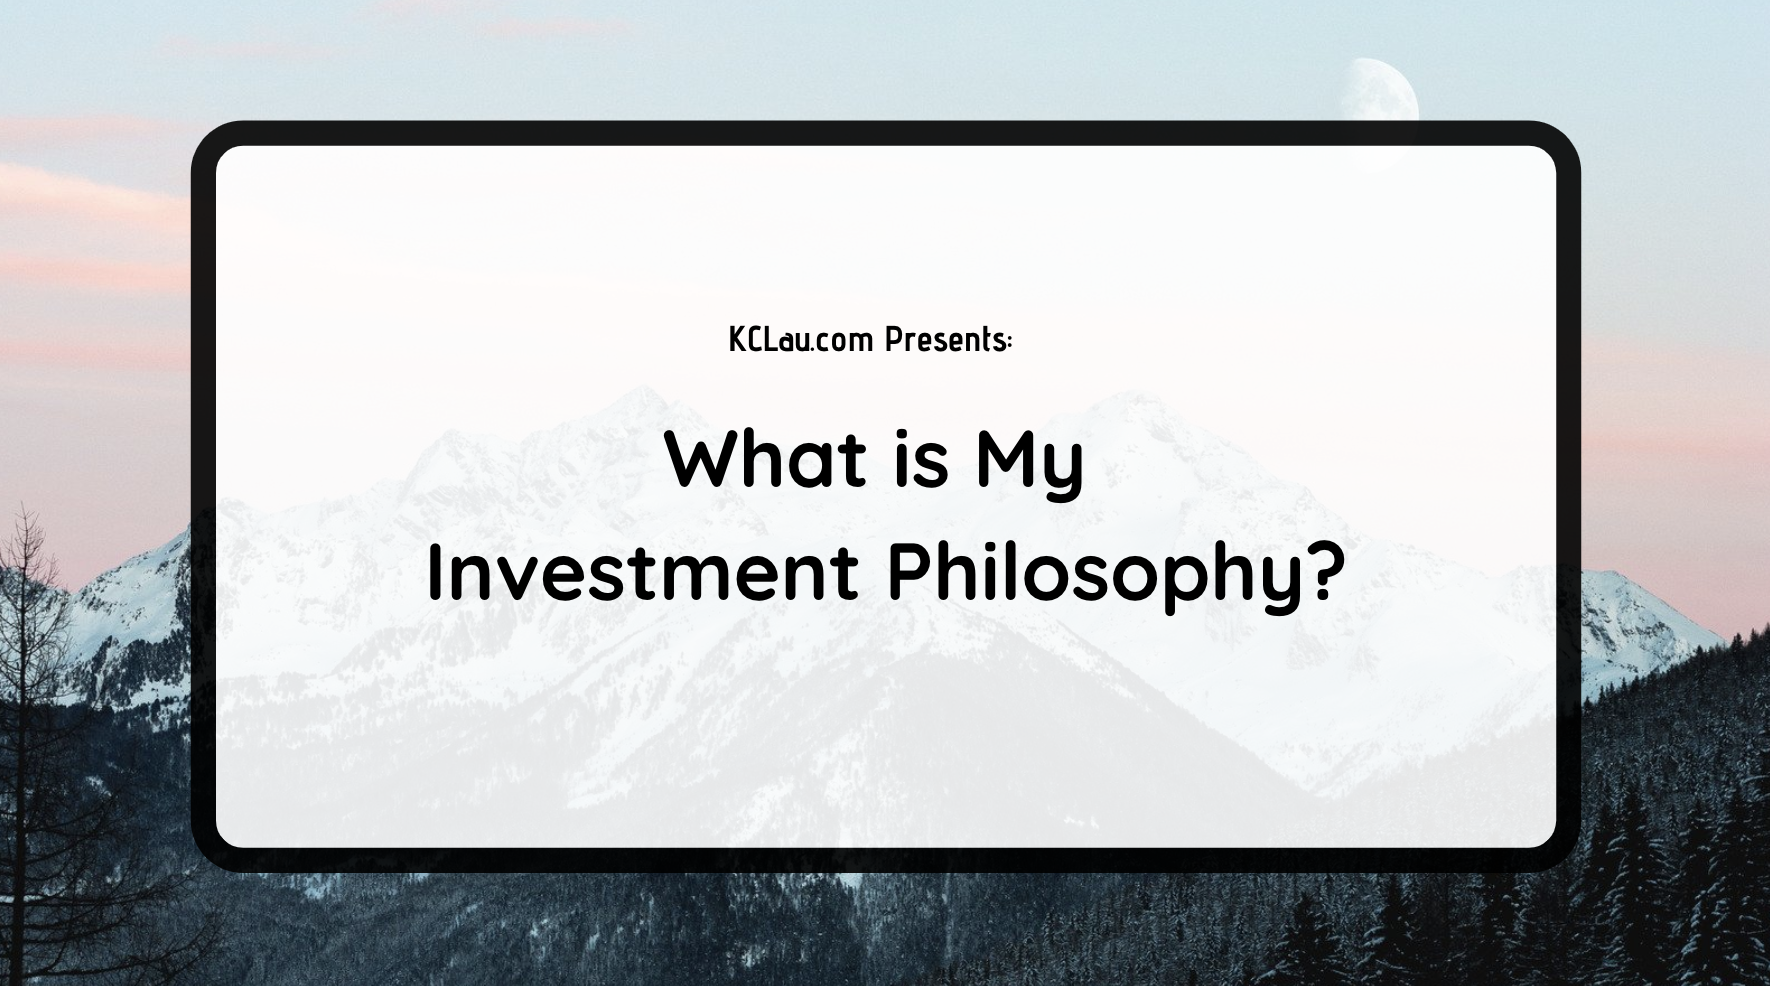 What is My Investment Philosophy?